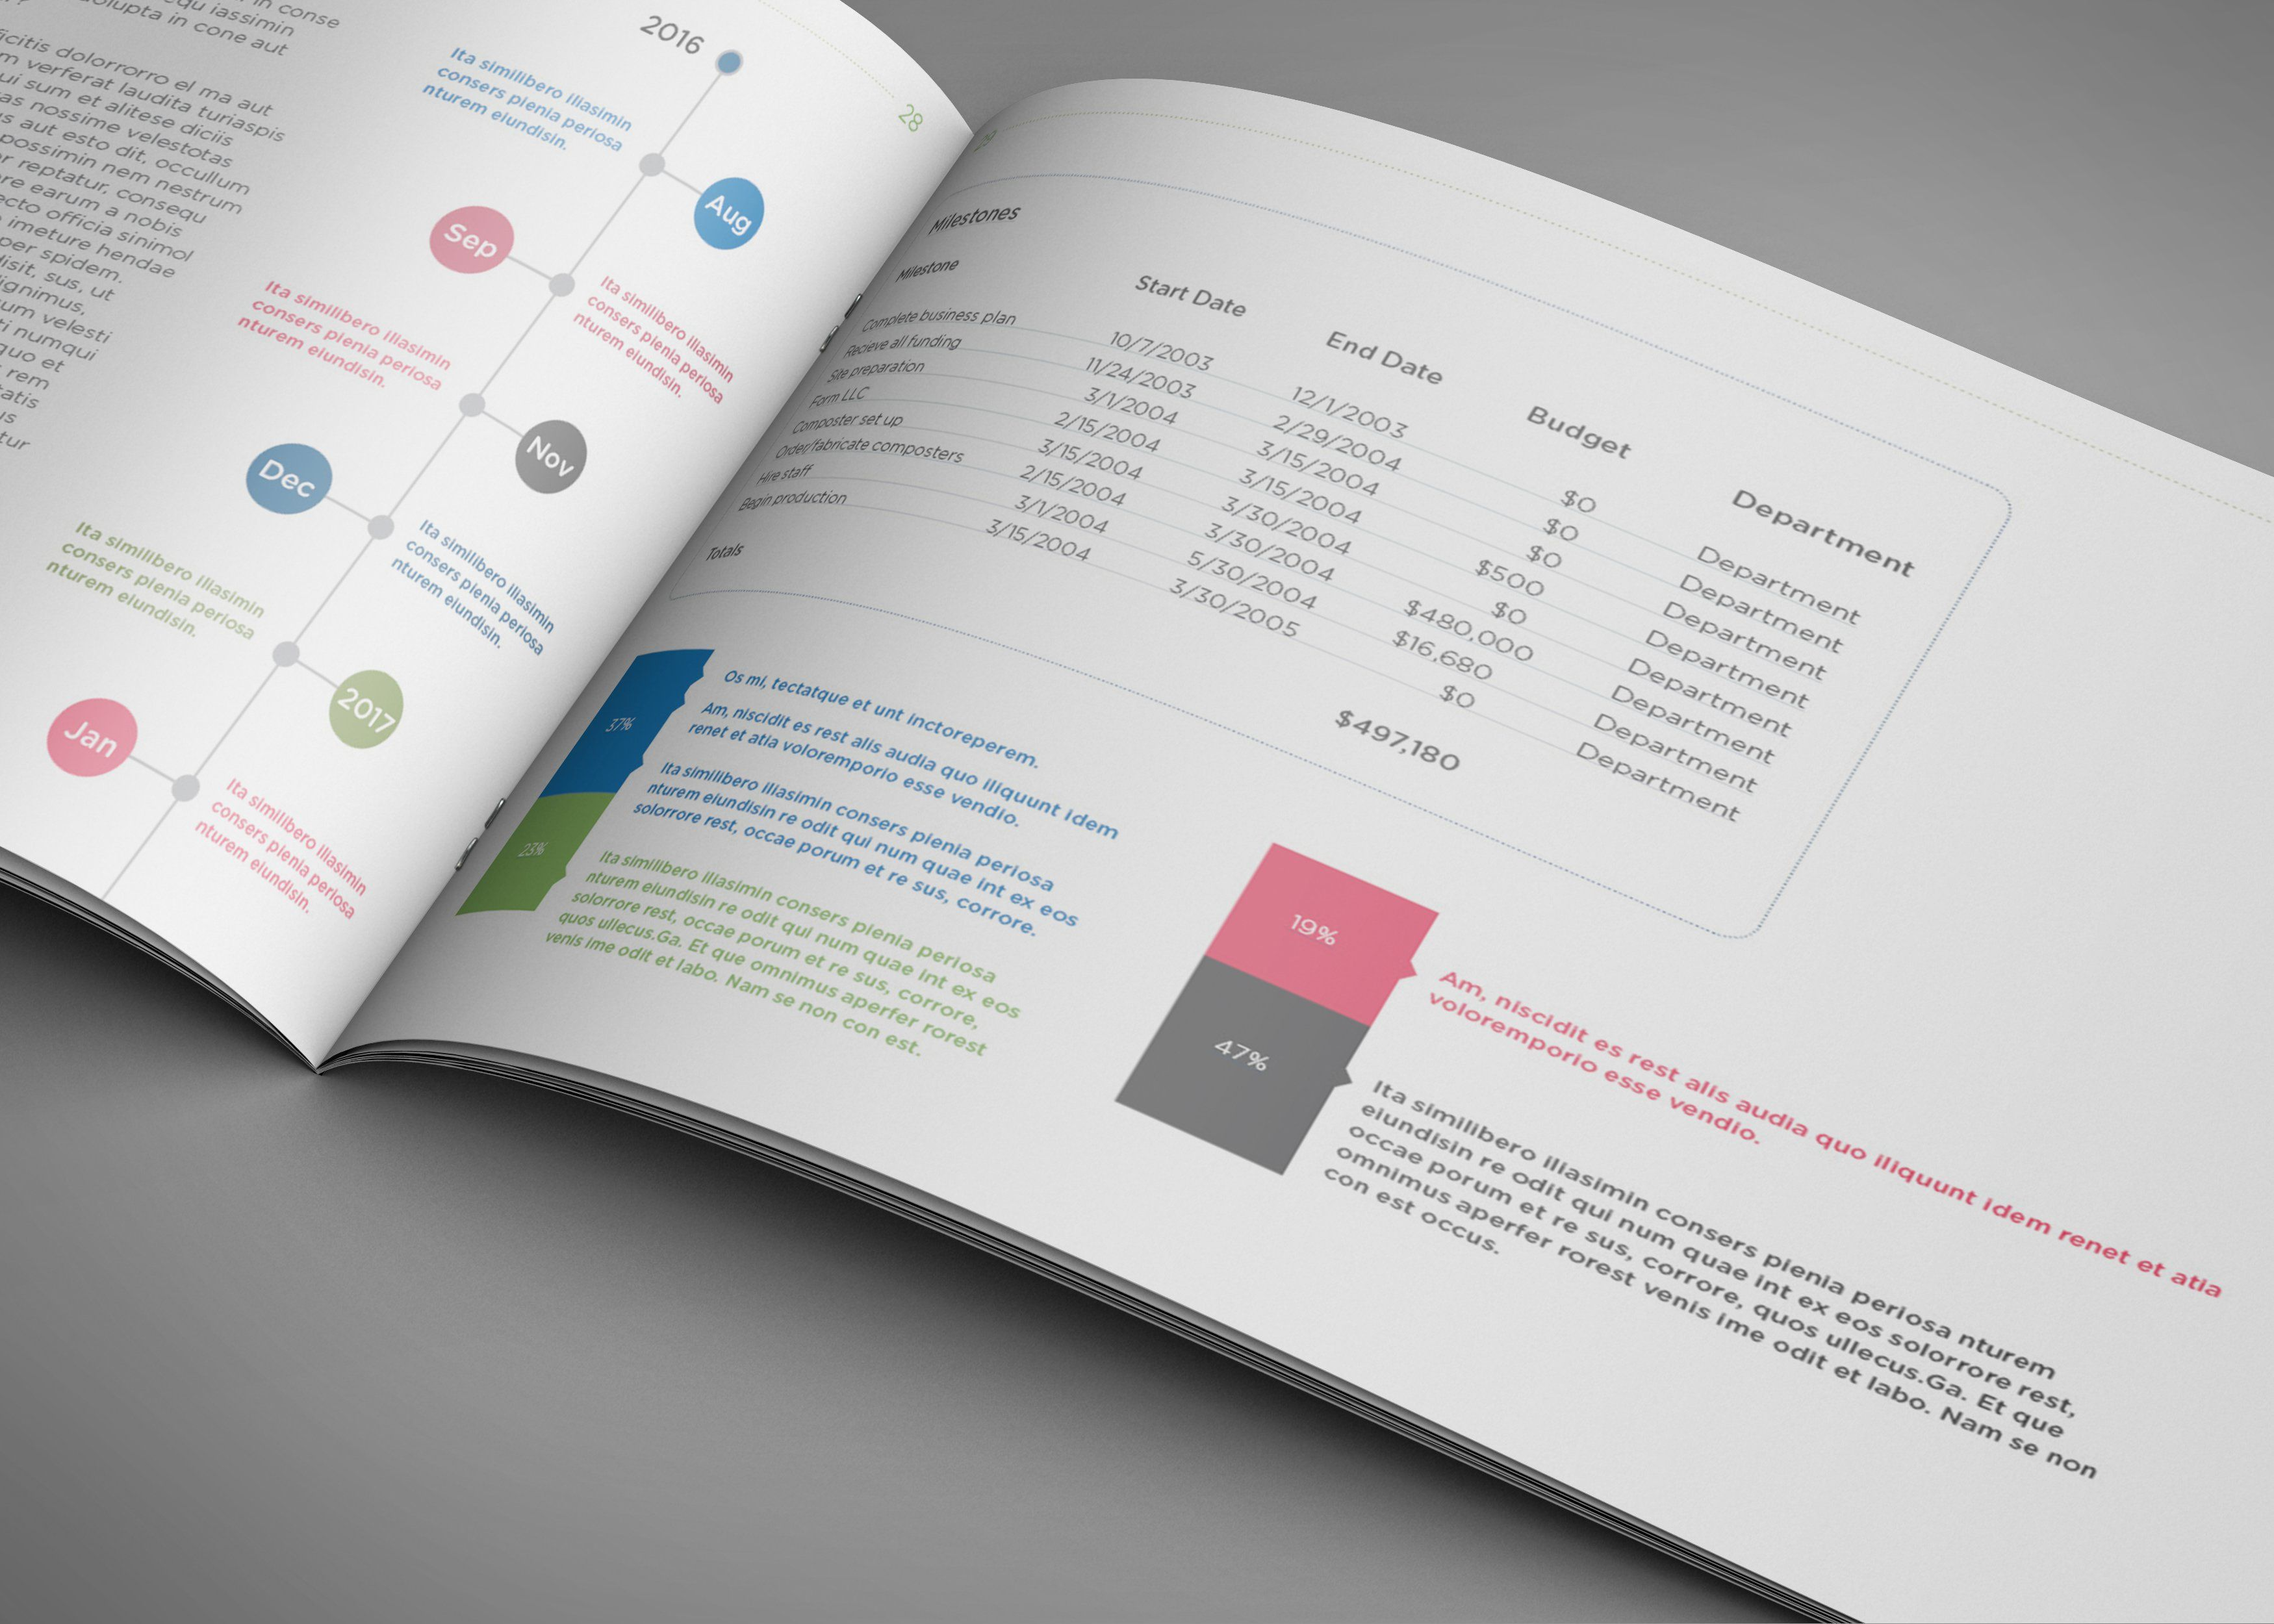 How To Create An Effective Business Plan Design Haven Articles - Effective business plan template